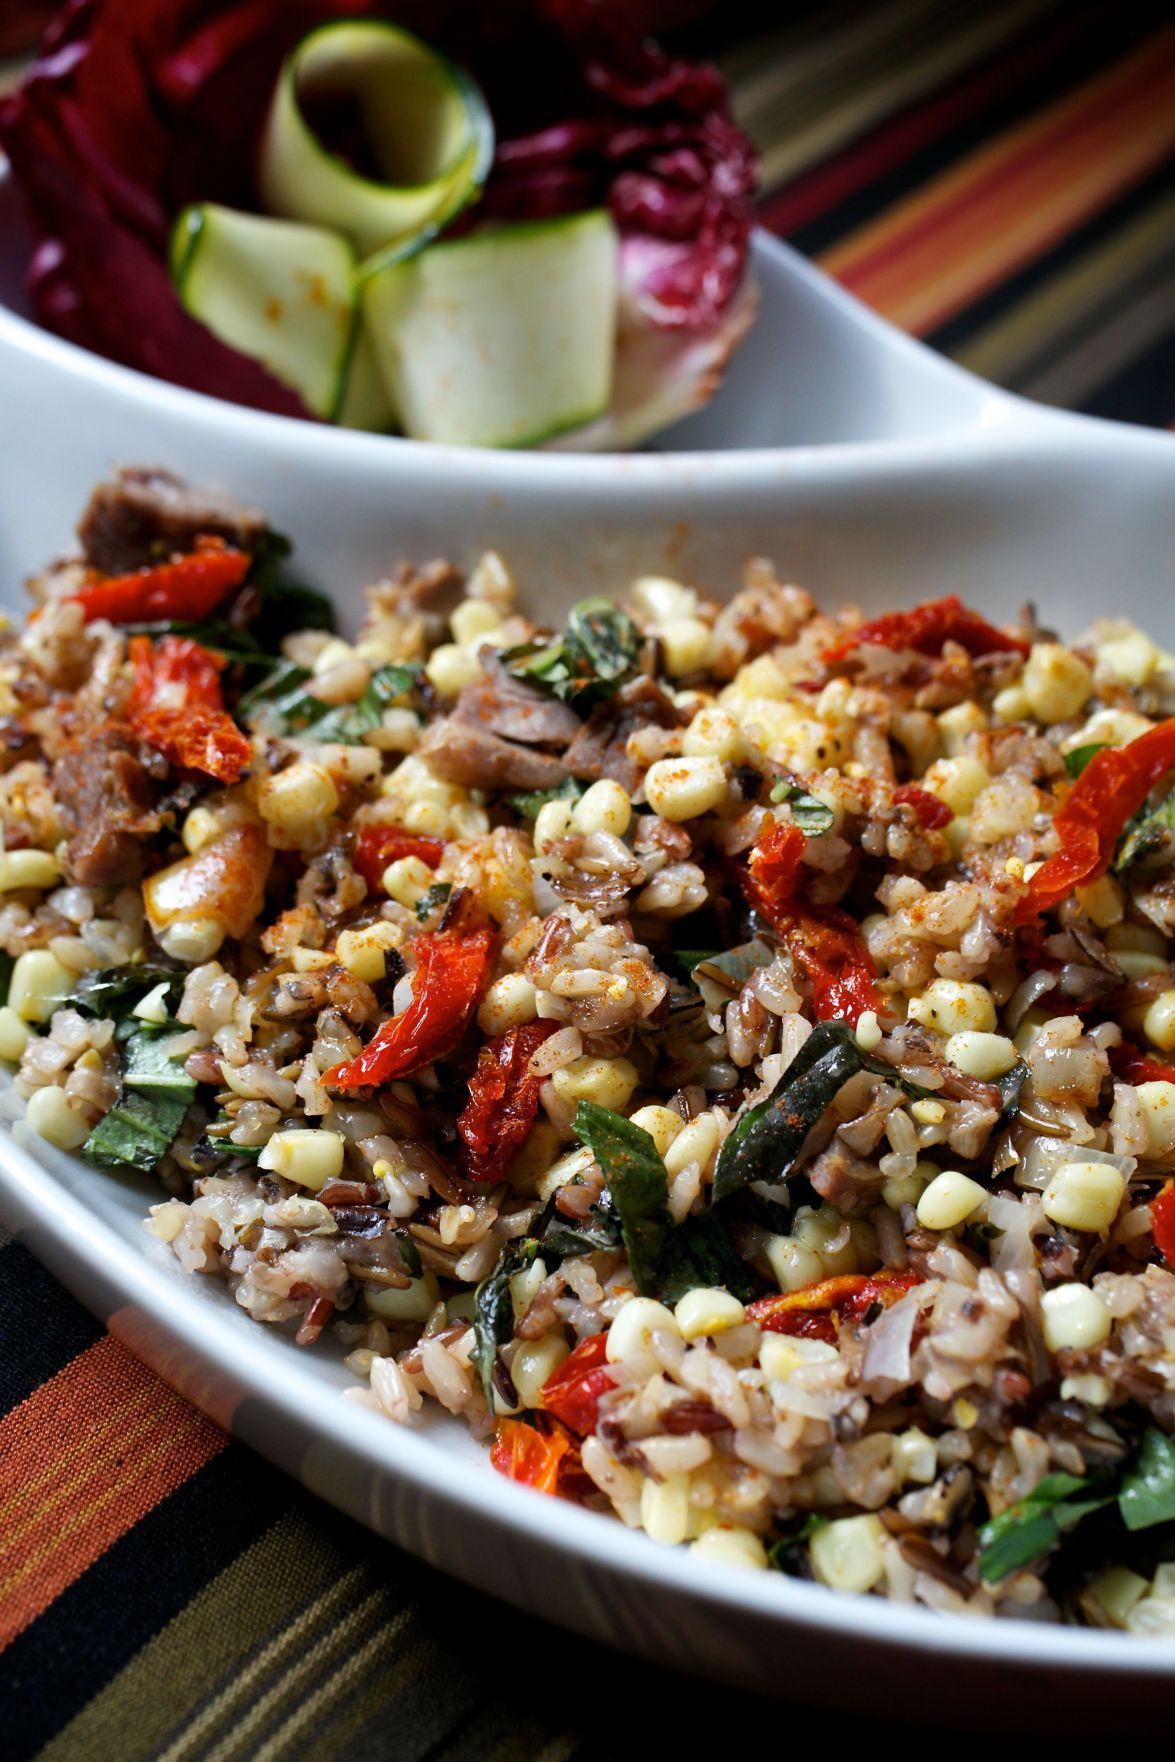 Cast-iron skillet makes this fried rice